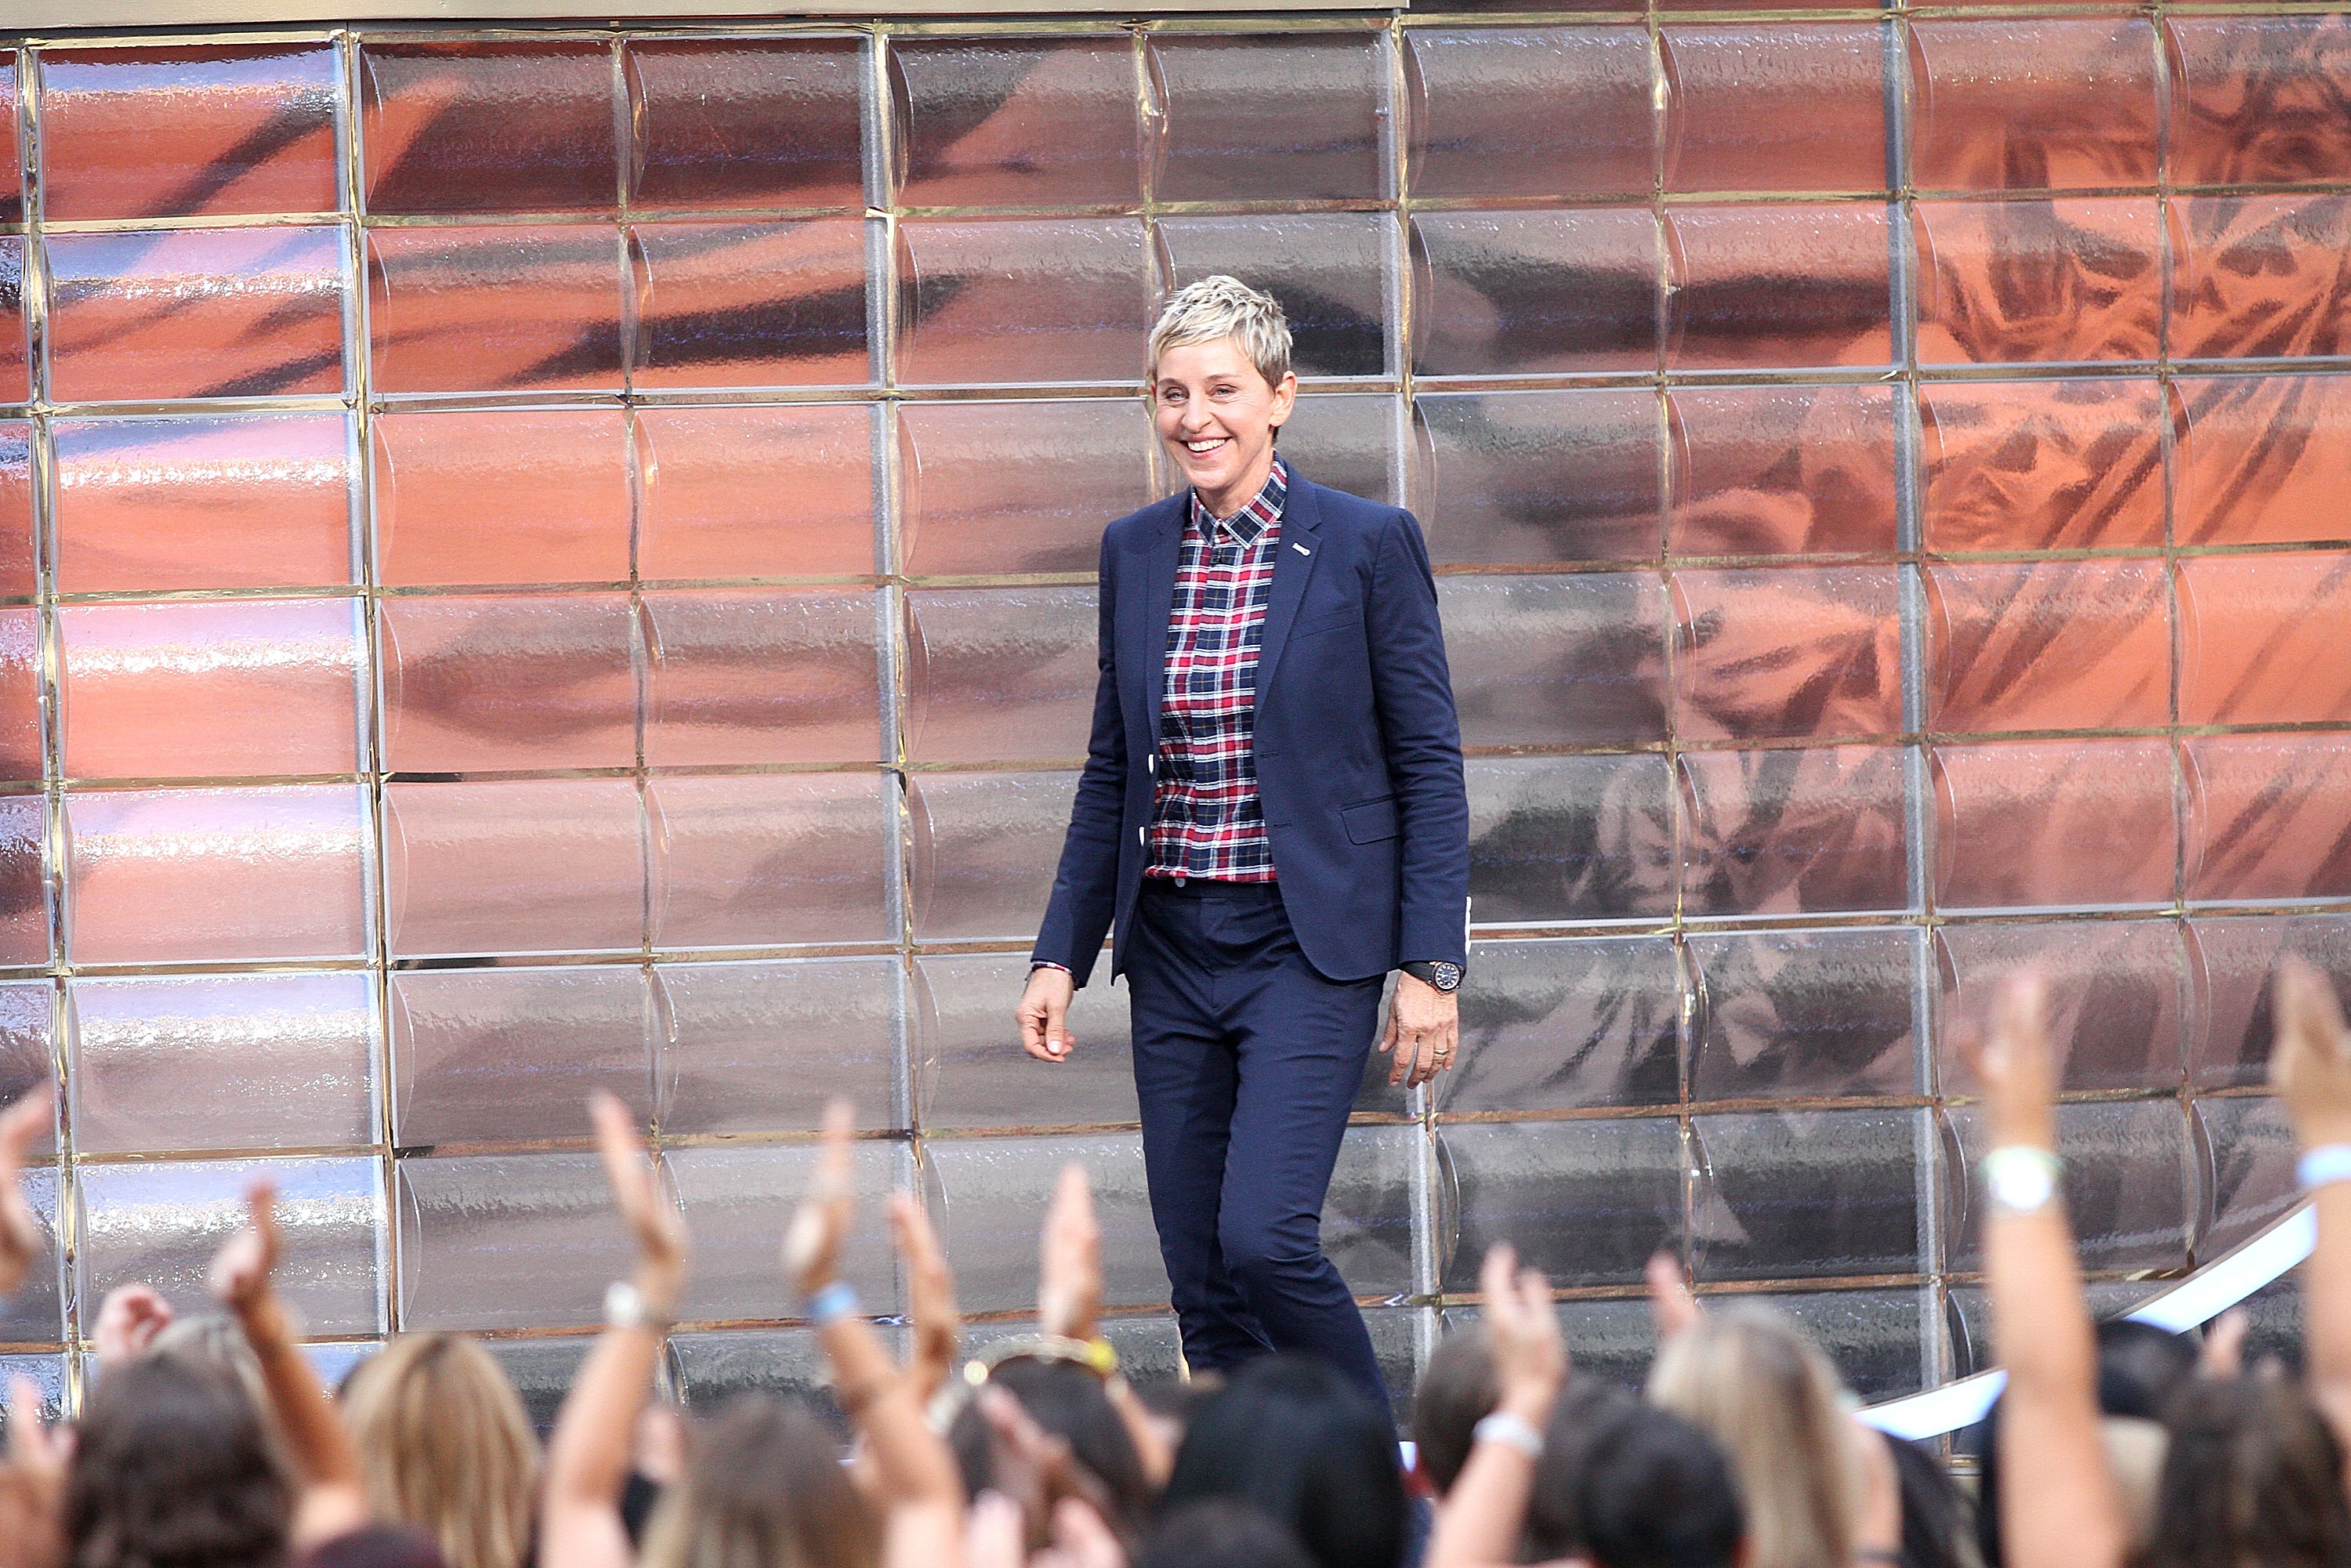 'The Ellen Degeneres Show' Season 13 bi-coastal premiere.